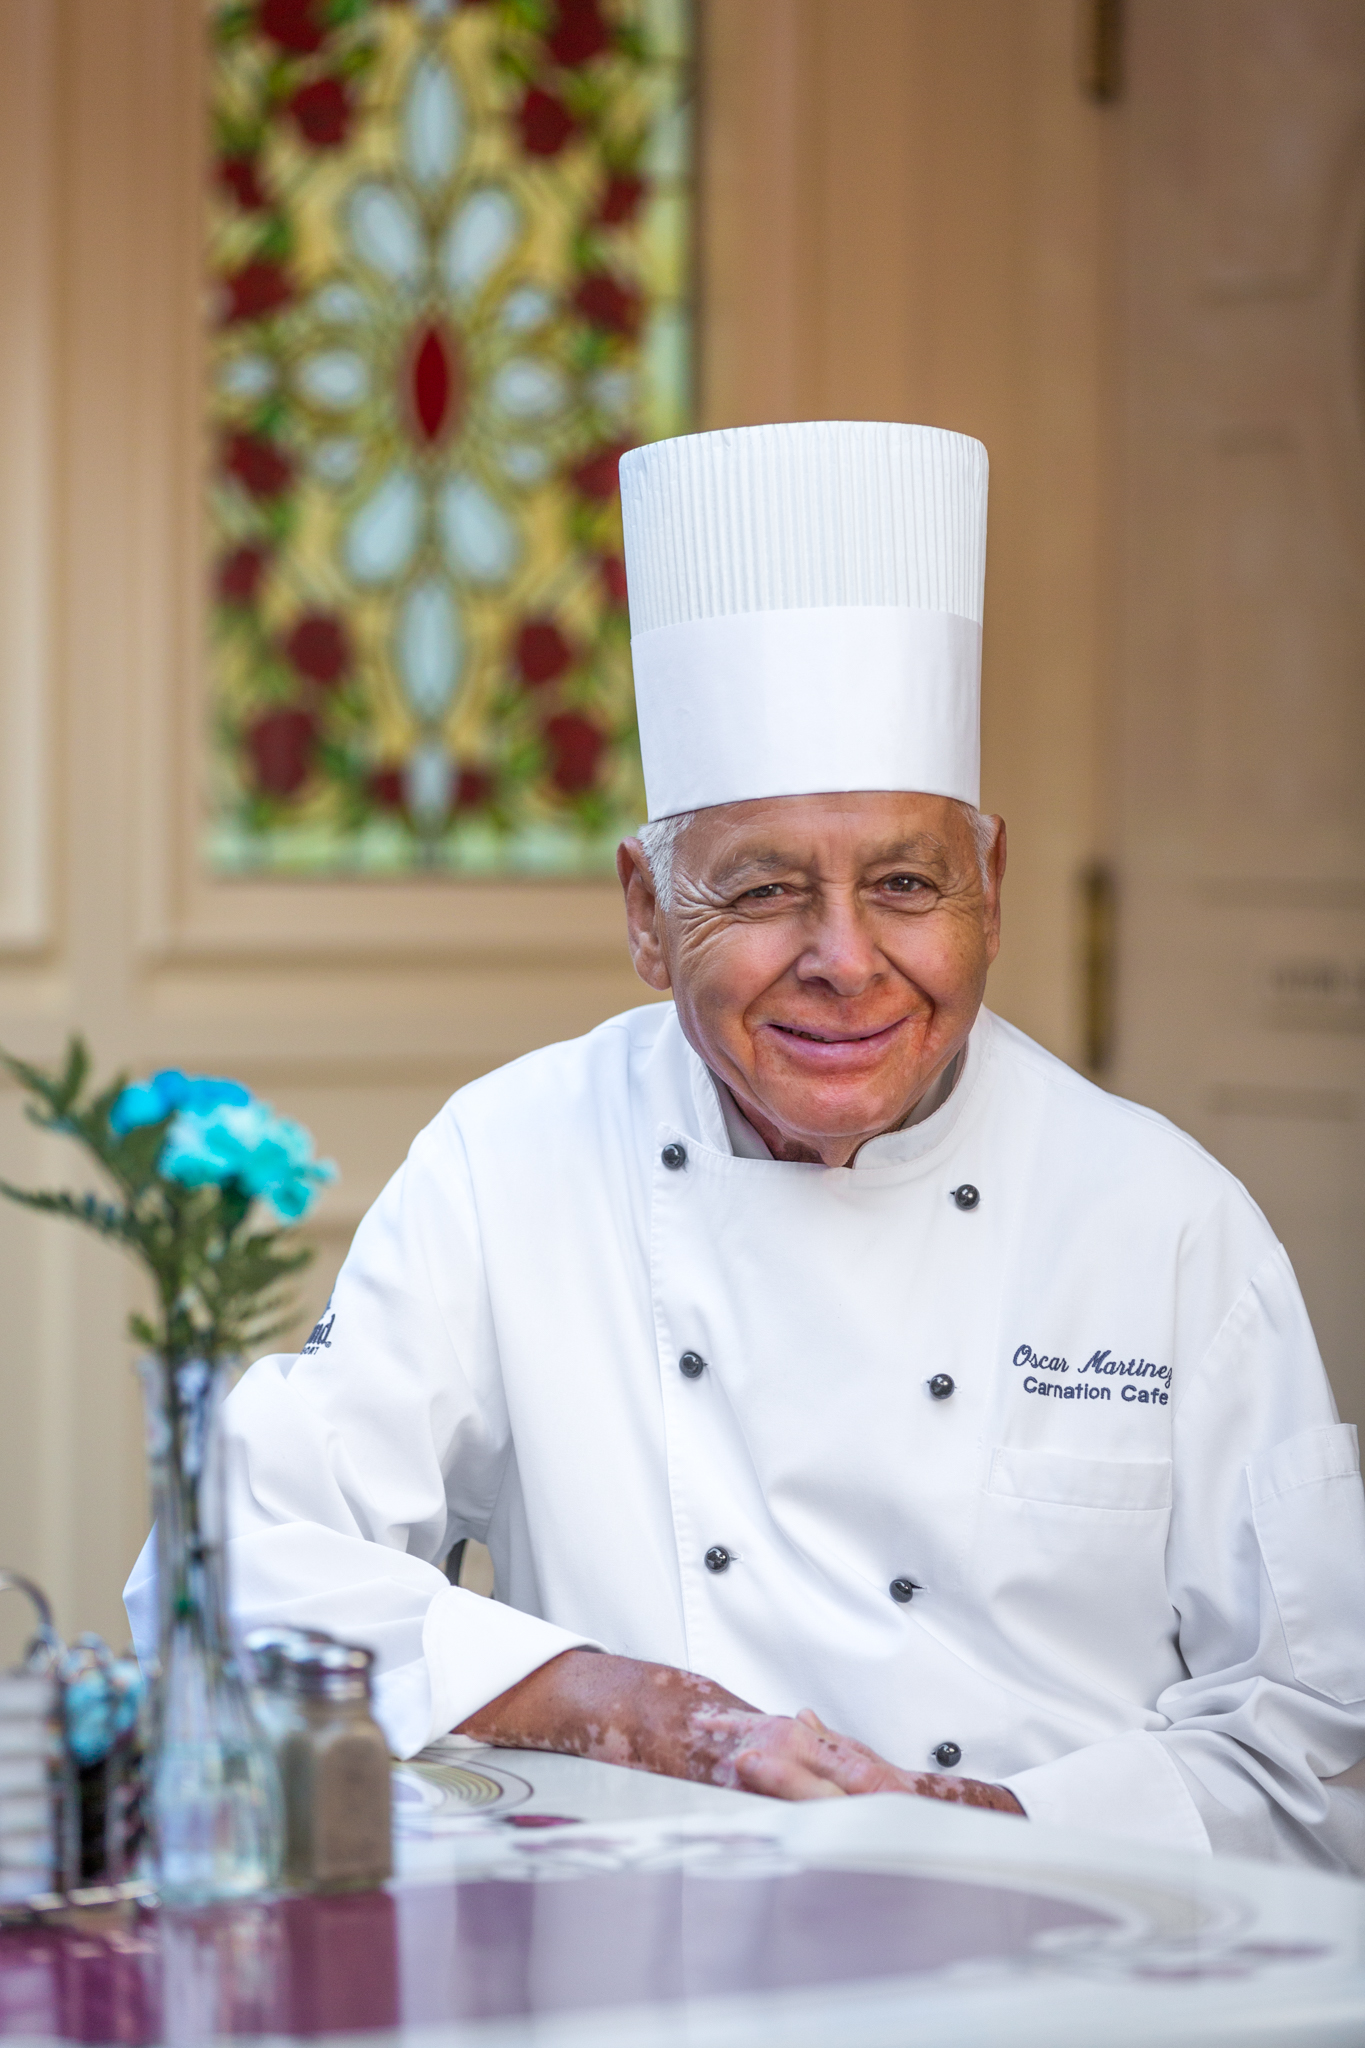 chef oscar celebrates 60 years disneyland resort los chef oscar celebrating 60 years at disneyland resort courtesy photo he didn t have much trouble finding a job when he moved to california in 1956 his